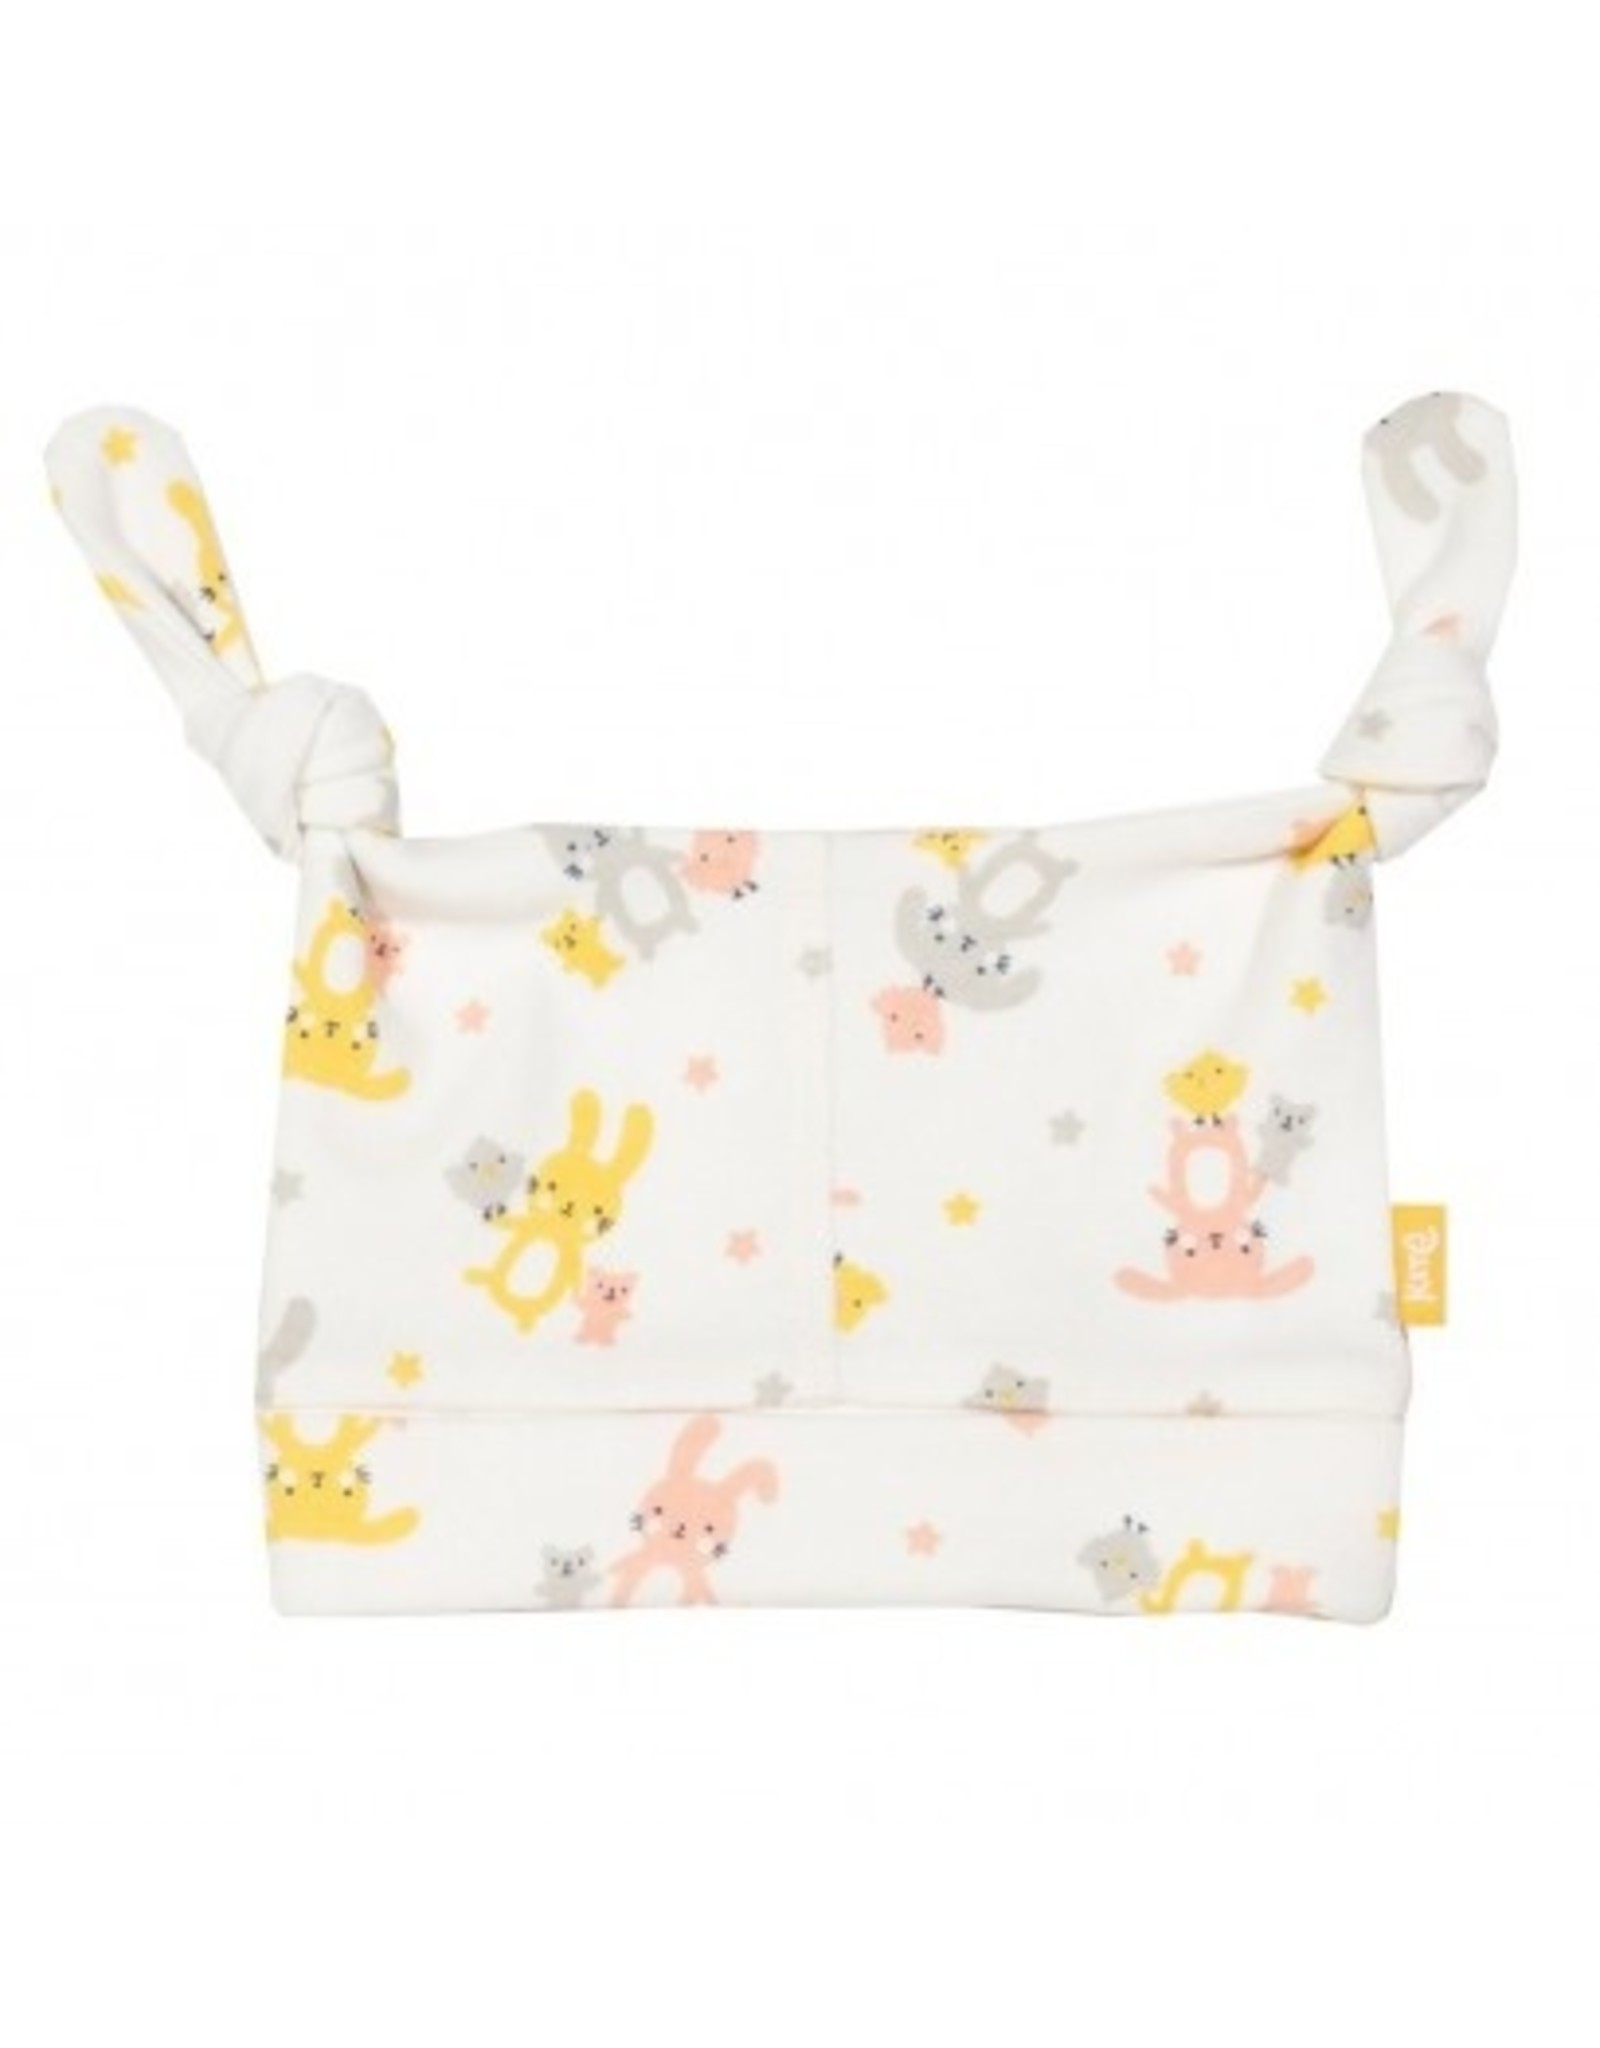 Kite Clothing Bun and Chick Hat - 0-6 Month